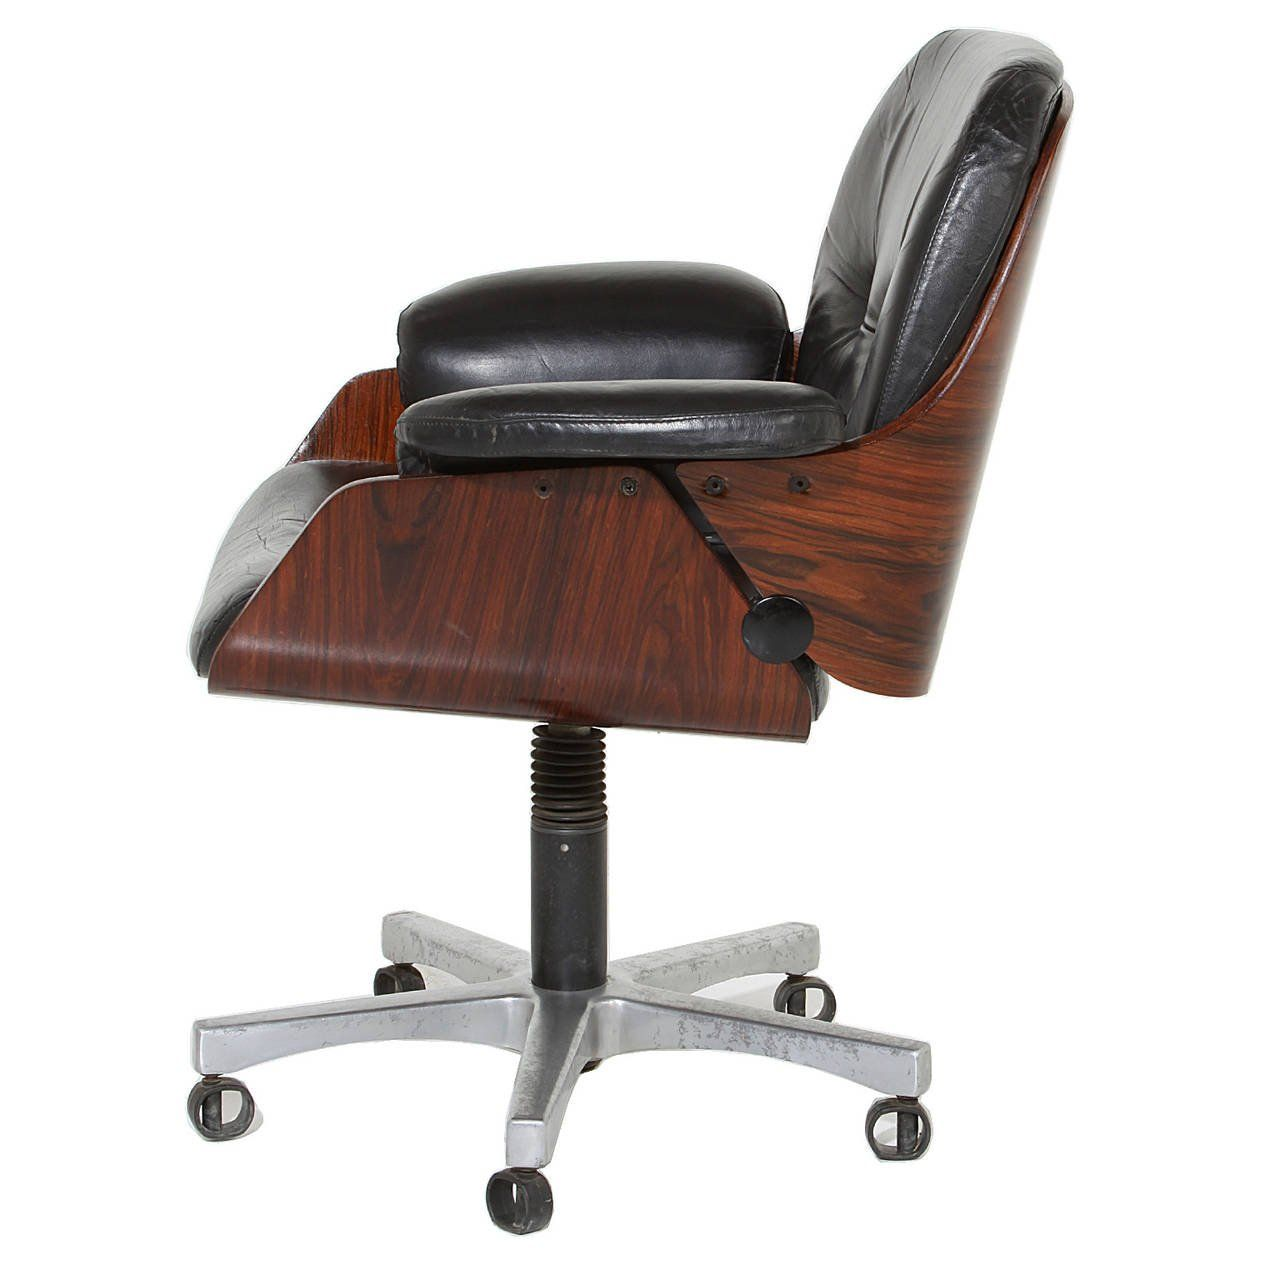 vintage office chairs. Image Result For Vintage Office Chair In Rosewood And Black Leather Swivel Chairs C